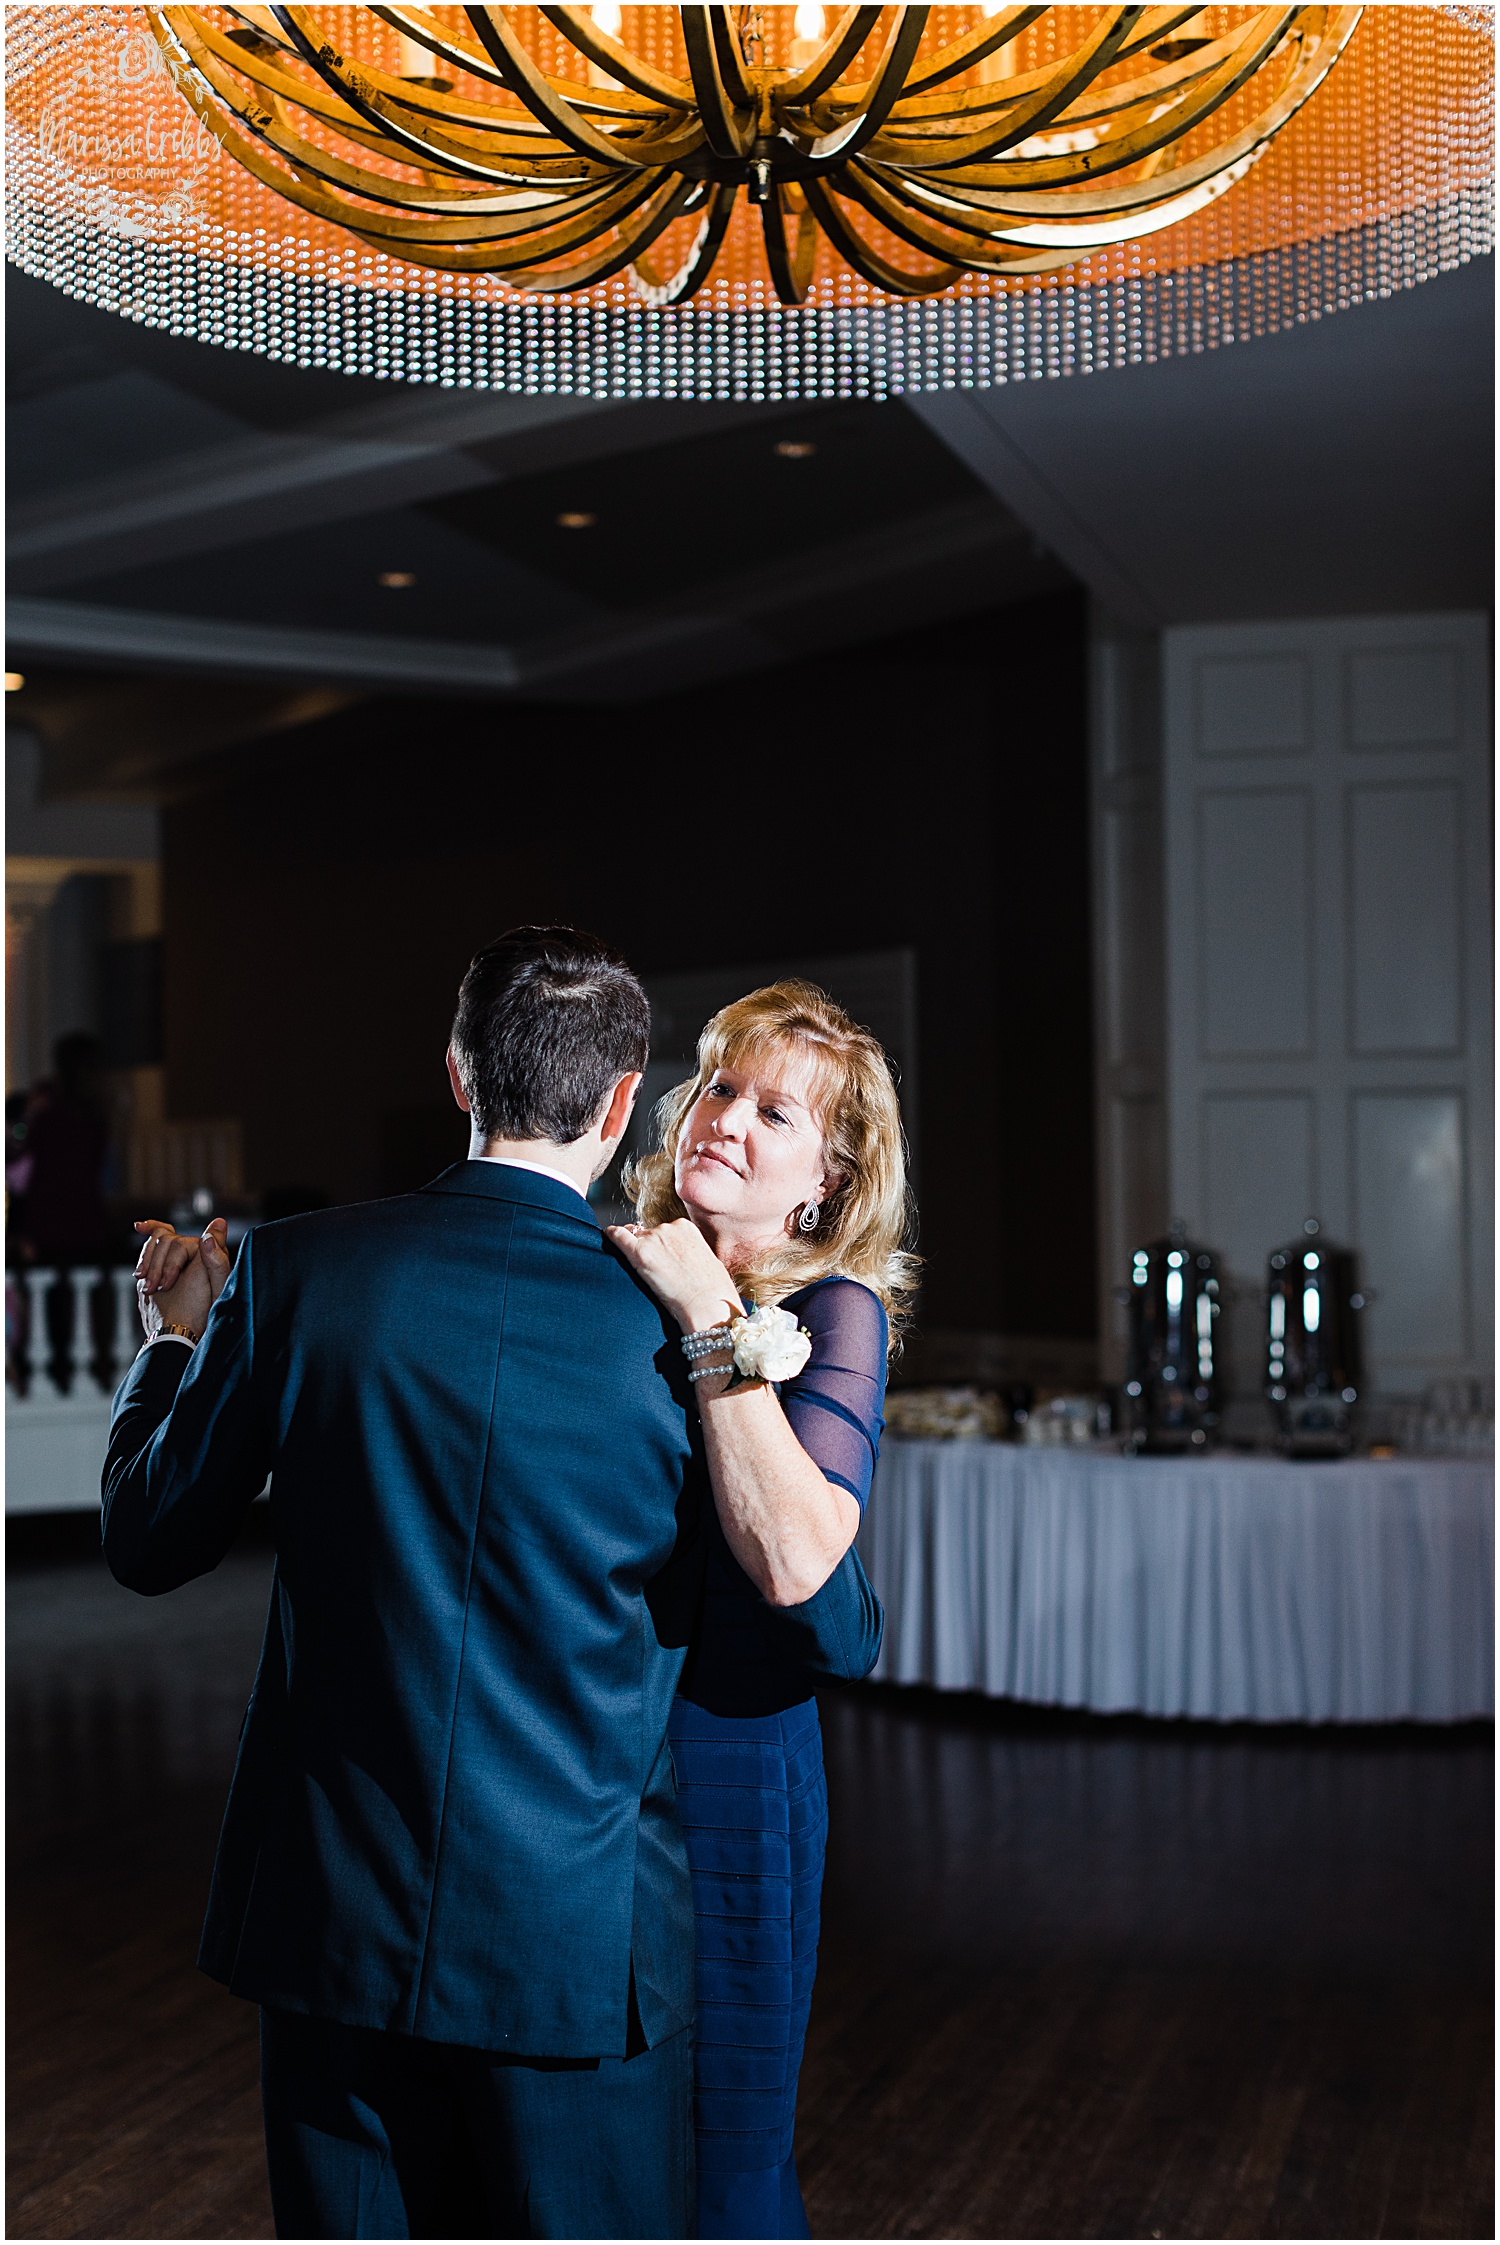 MEGAN & DEREK WEDDING BLOG | MARISSA CRIBBS PHOTOGRAPHY_8232.jpg